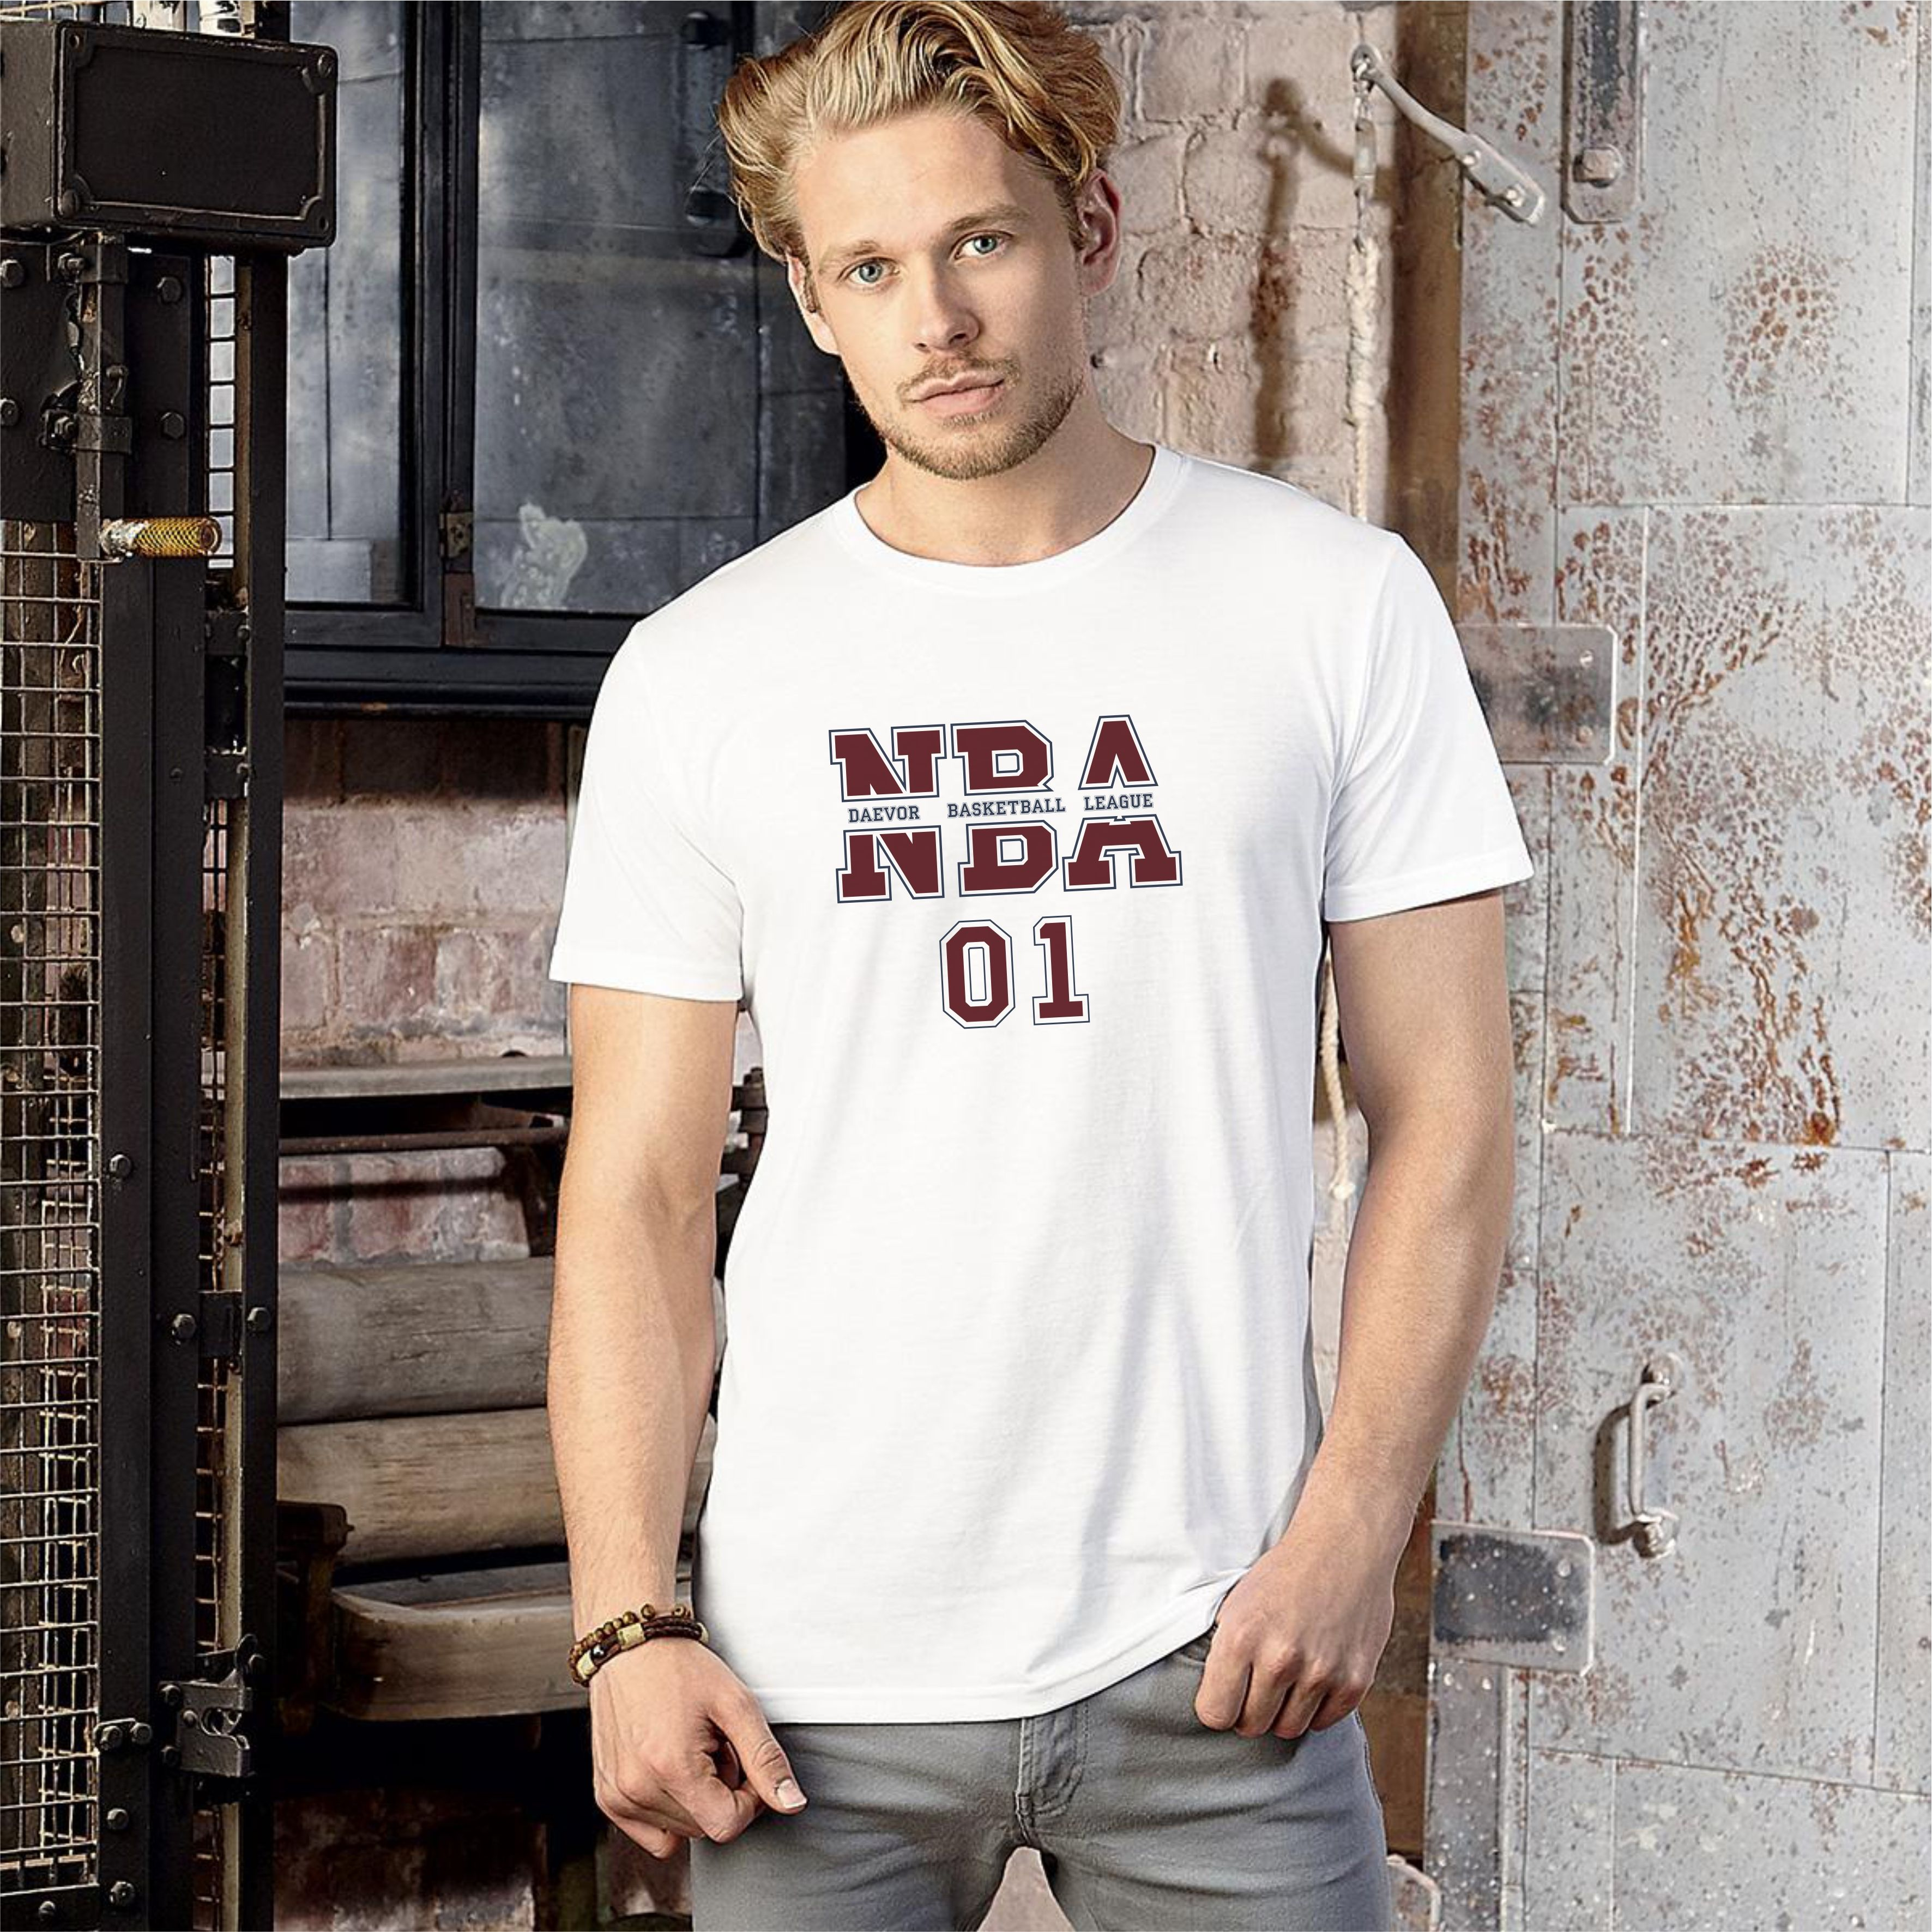 CAMISETA-ALGODON-PURO-NBA-BASKETBALL-LEAGUE-HOMBRE